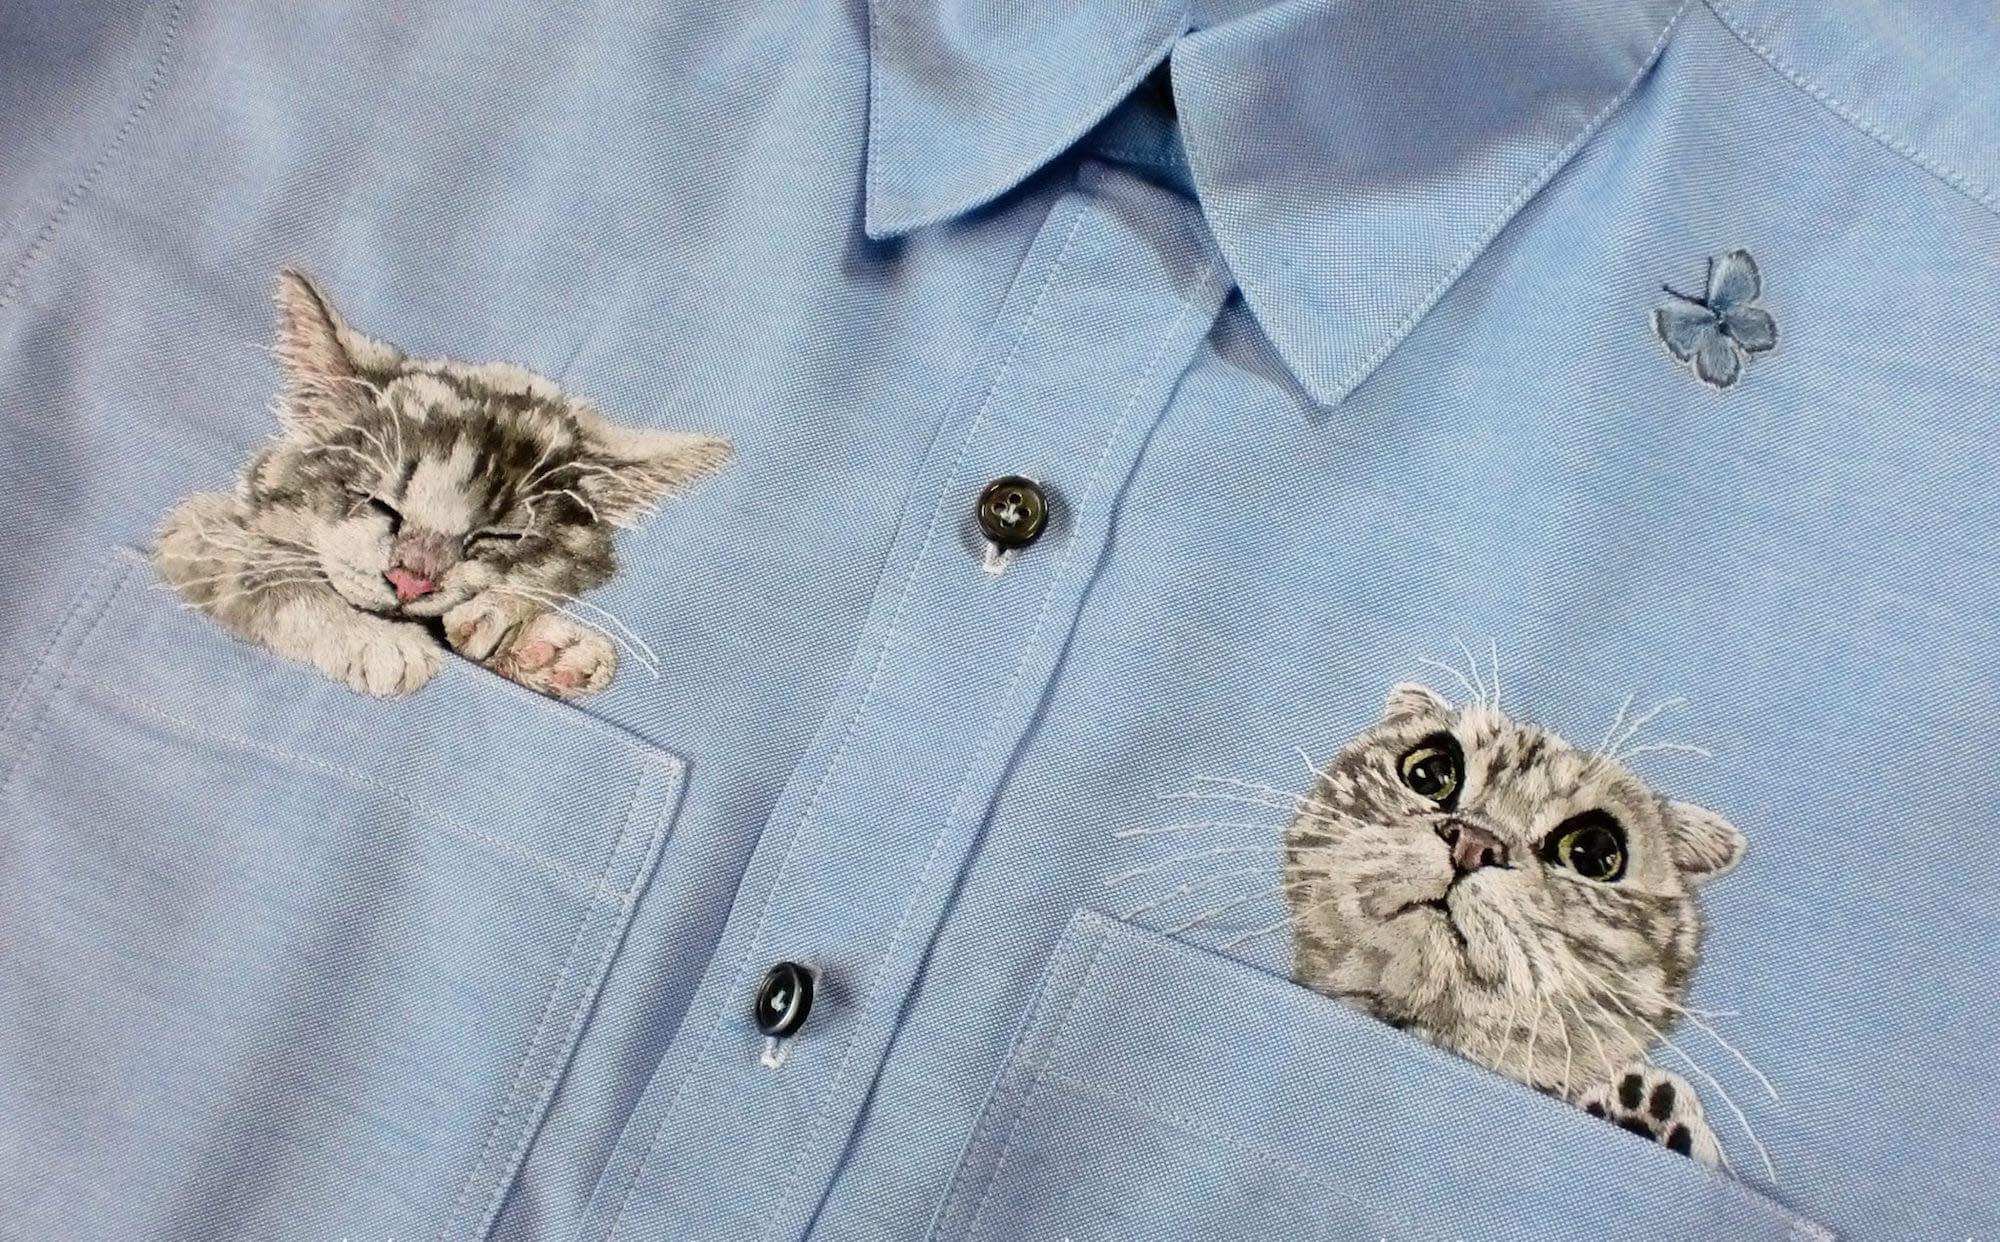 embroidered cats peeking out of shirt pockets by Hiroko Kubota